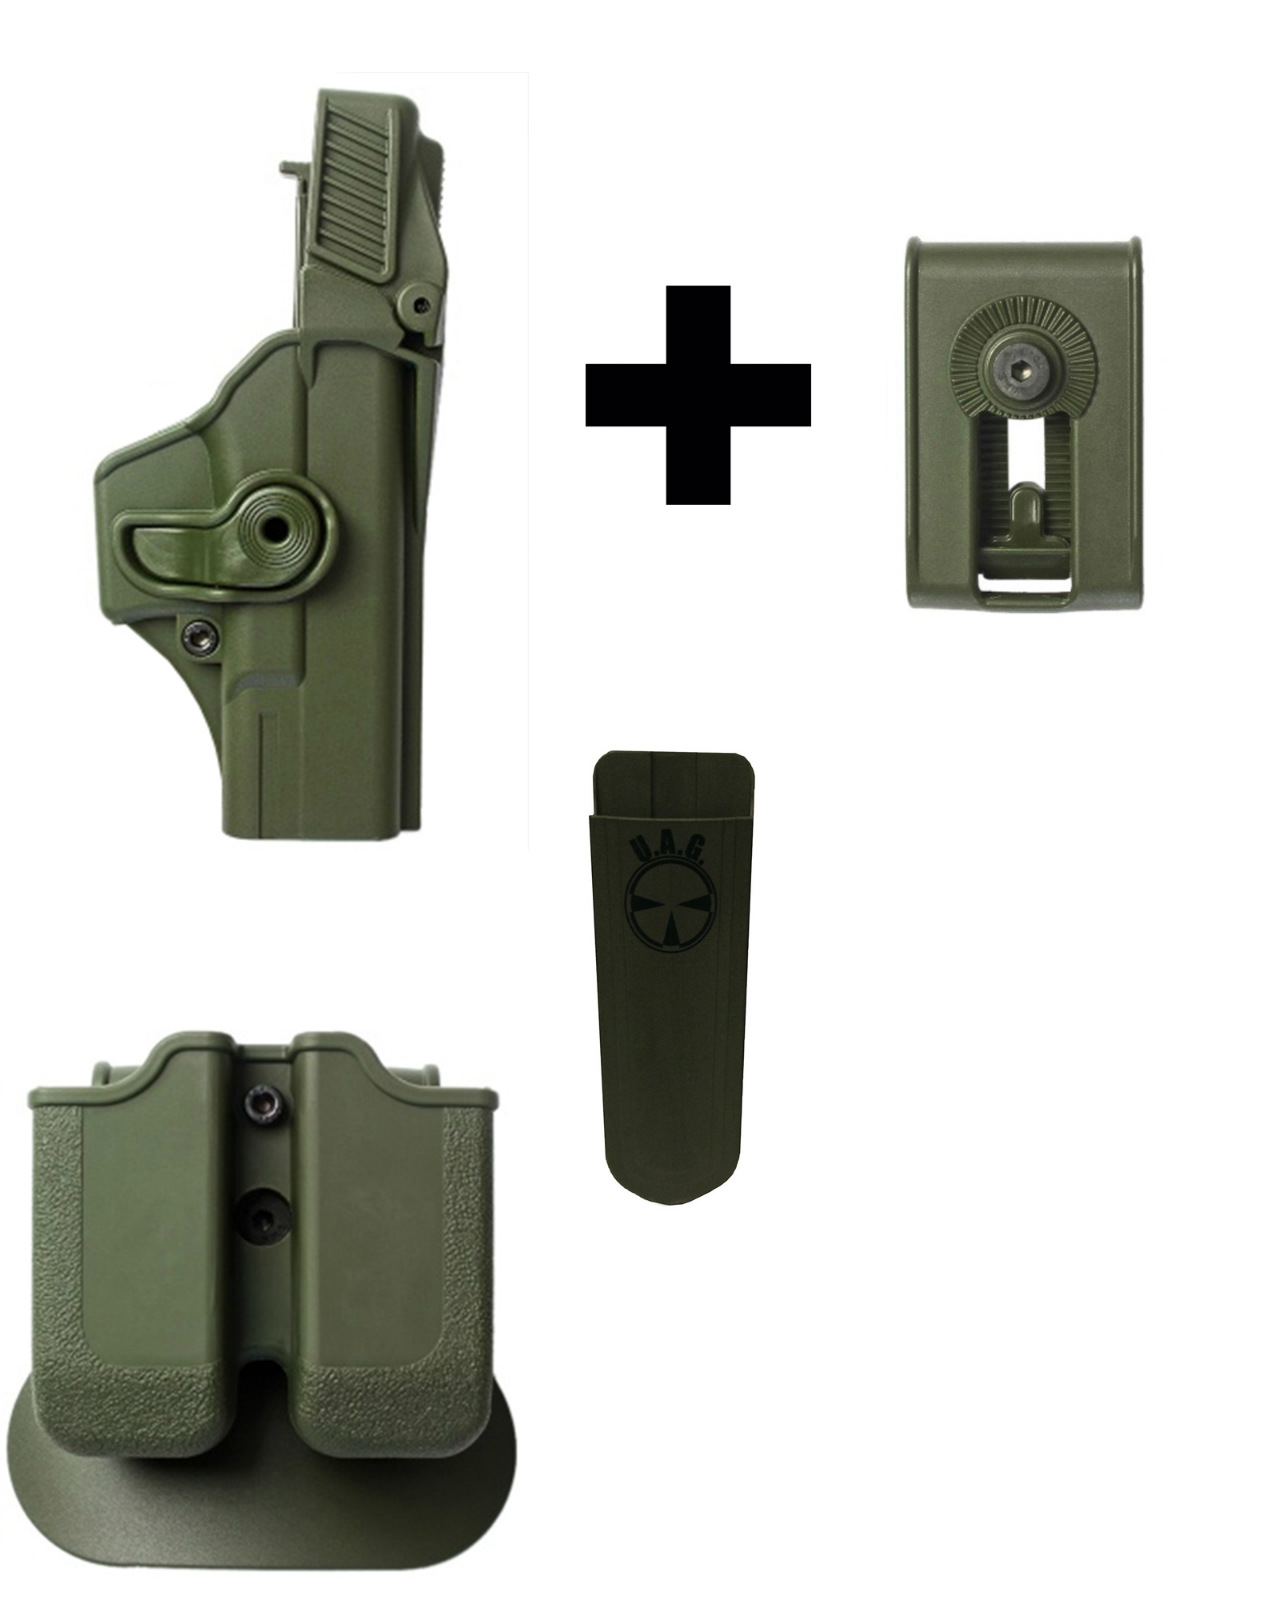 IMI Defense Z2000 MP00 Double Mag Holder & Paddle + Z1400 Level 3 360� Rotate Holster Glock 19 23 25 32 Gen 4, OD Green... by